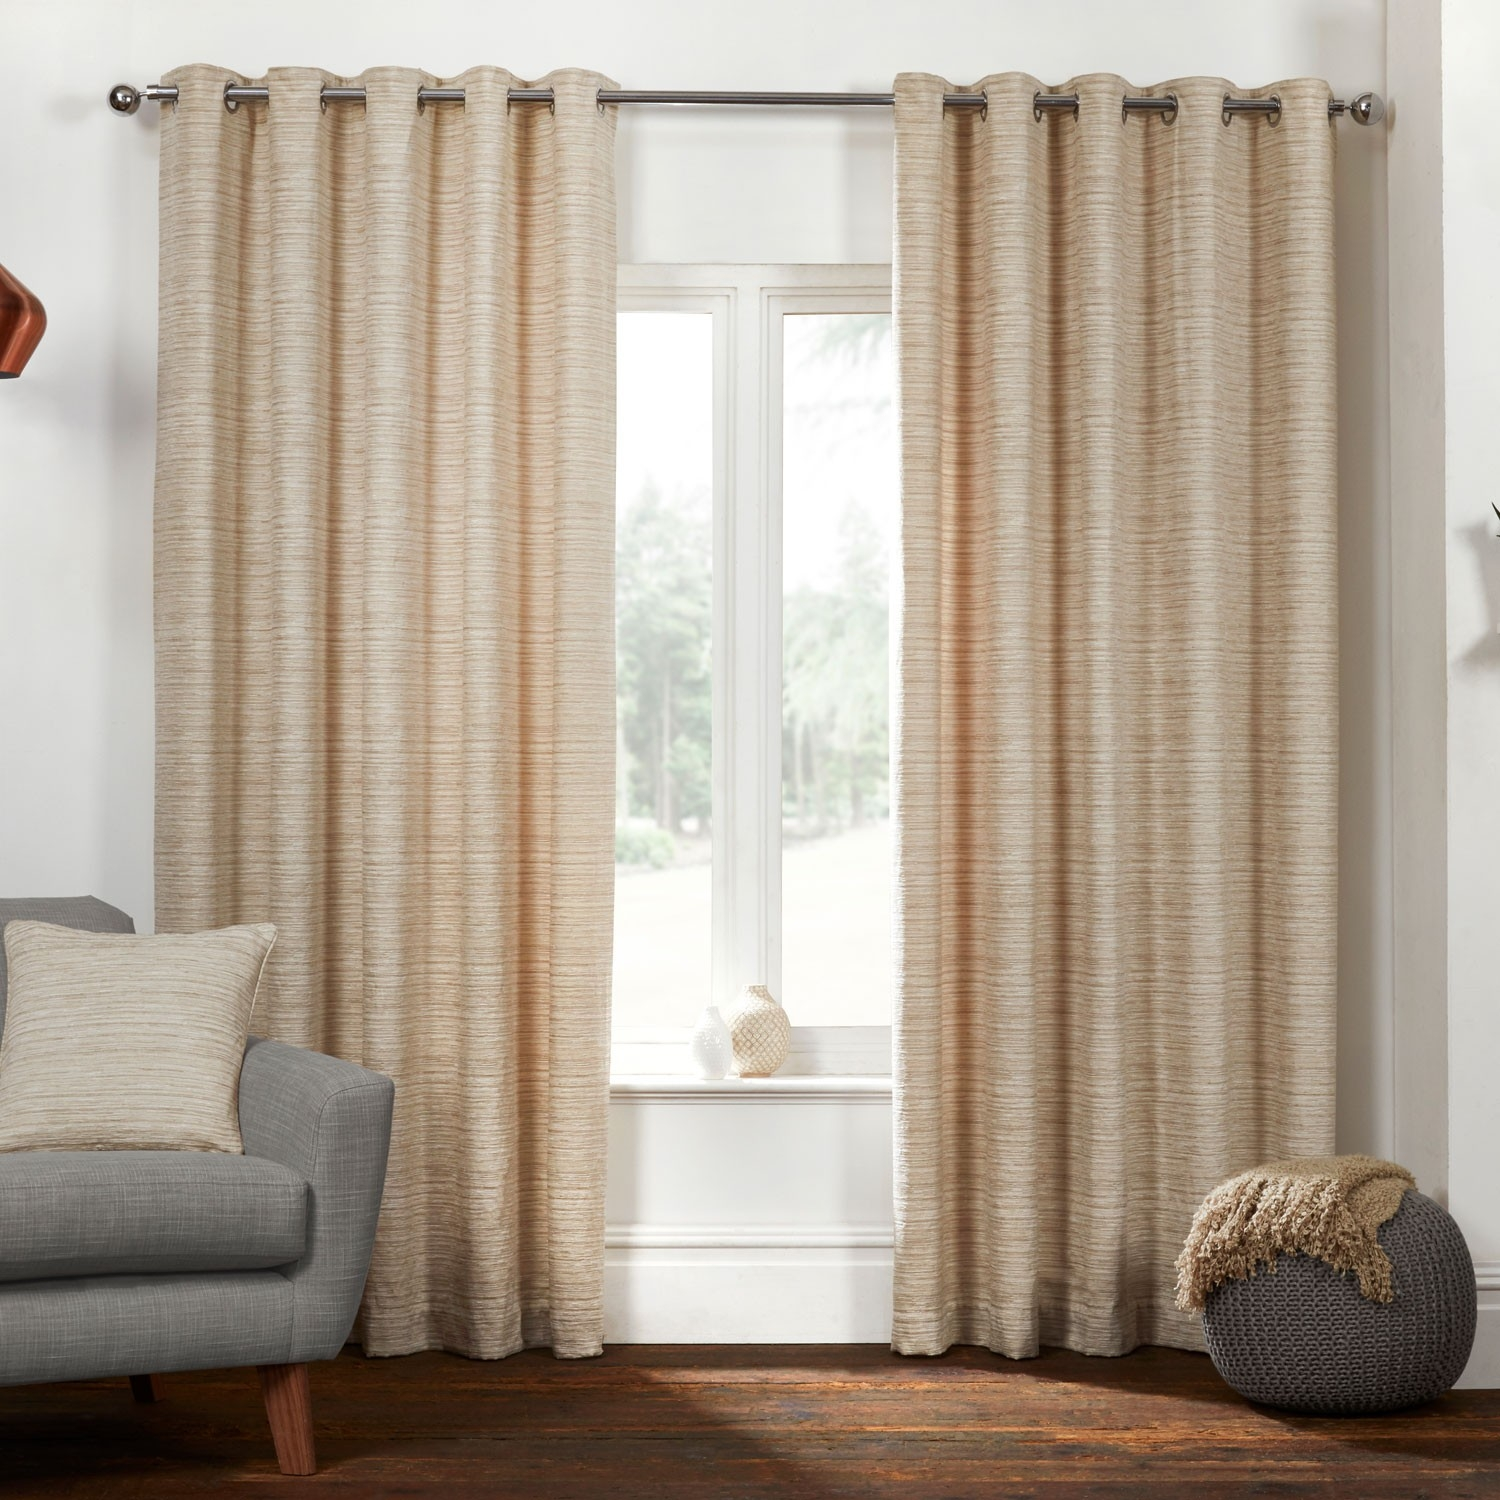 Montreal Natural Textured Woven Luxury Eyelet Curtains Pair Intended For Brown Eyelet Curtains (Image 16 of 25)